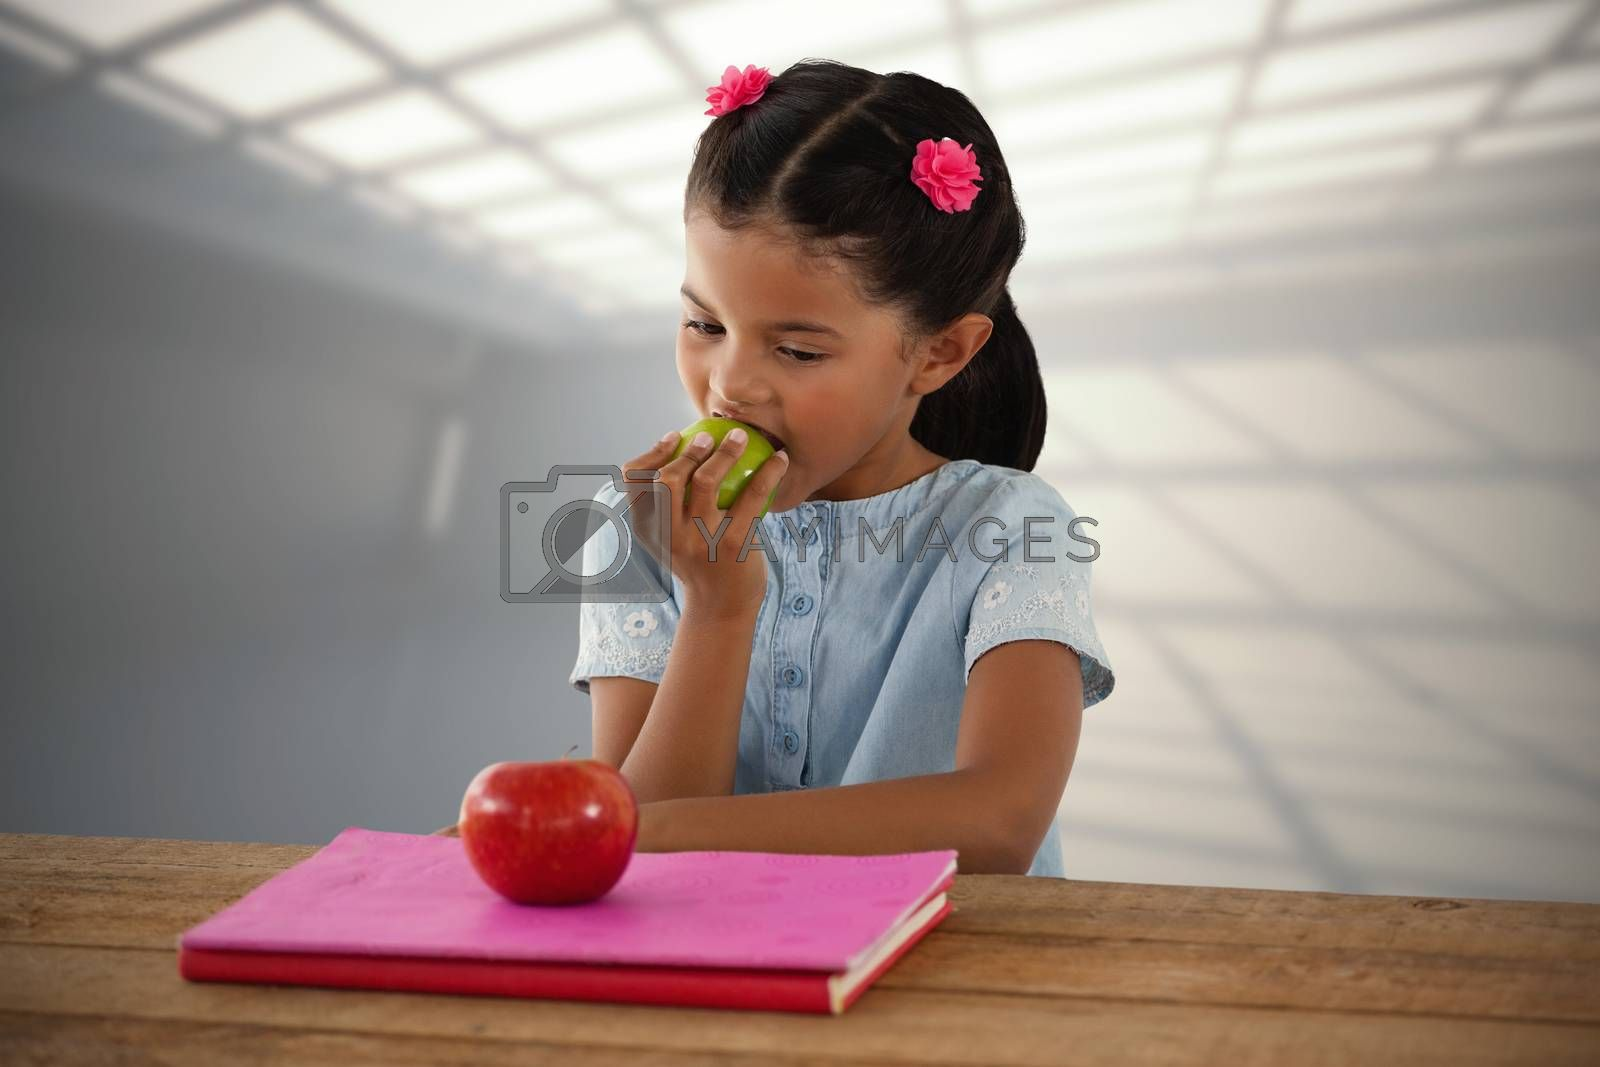 Composite image of girl eating granny smith apple at table by Wavebreakmedia